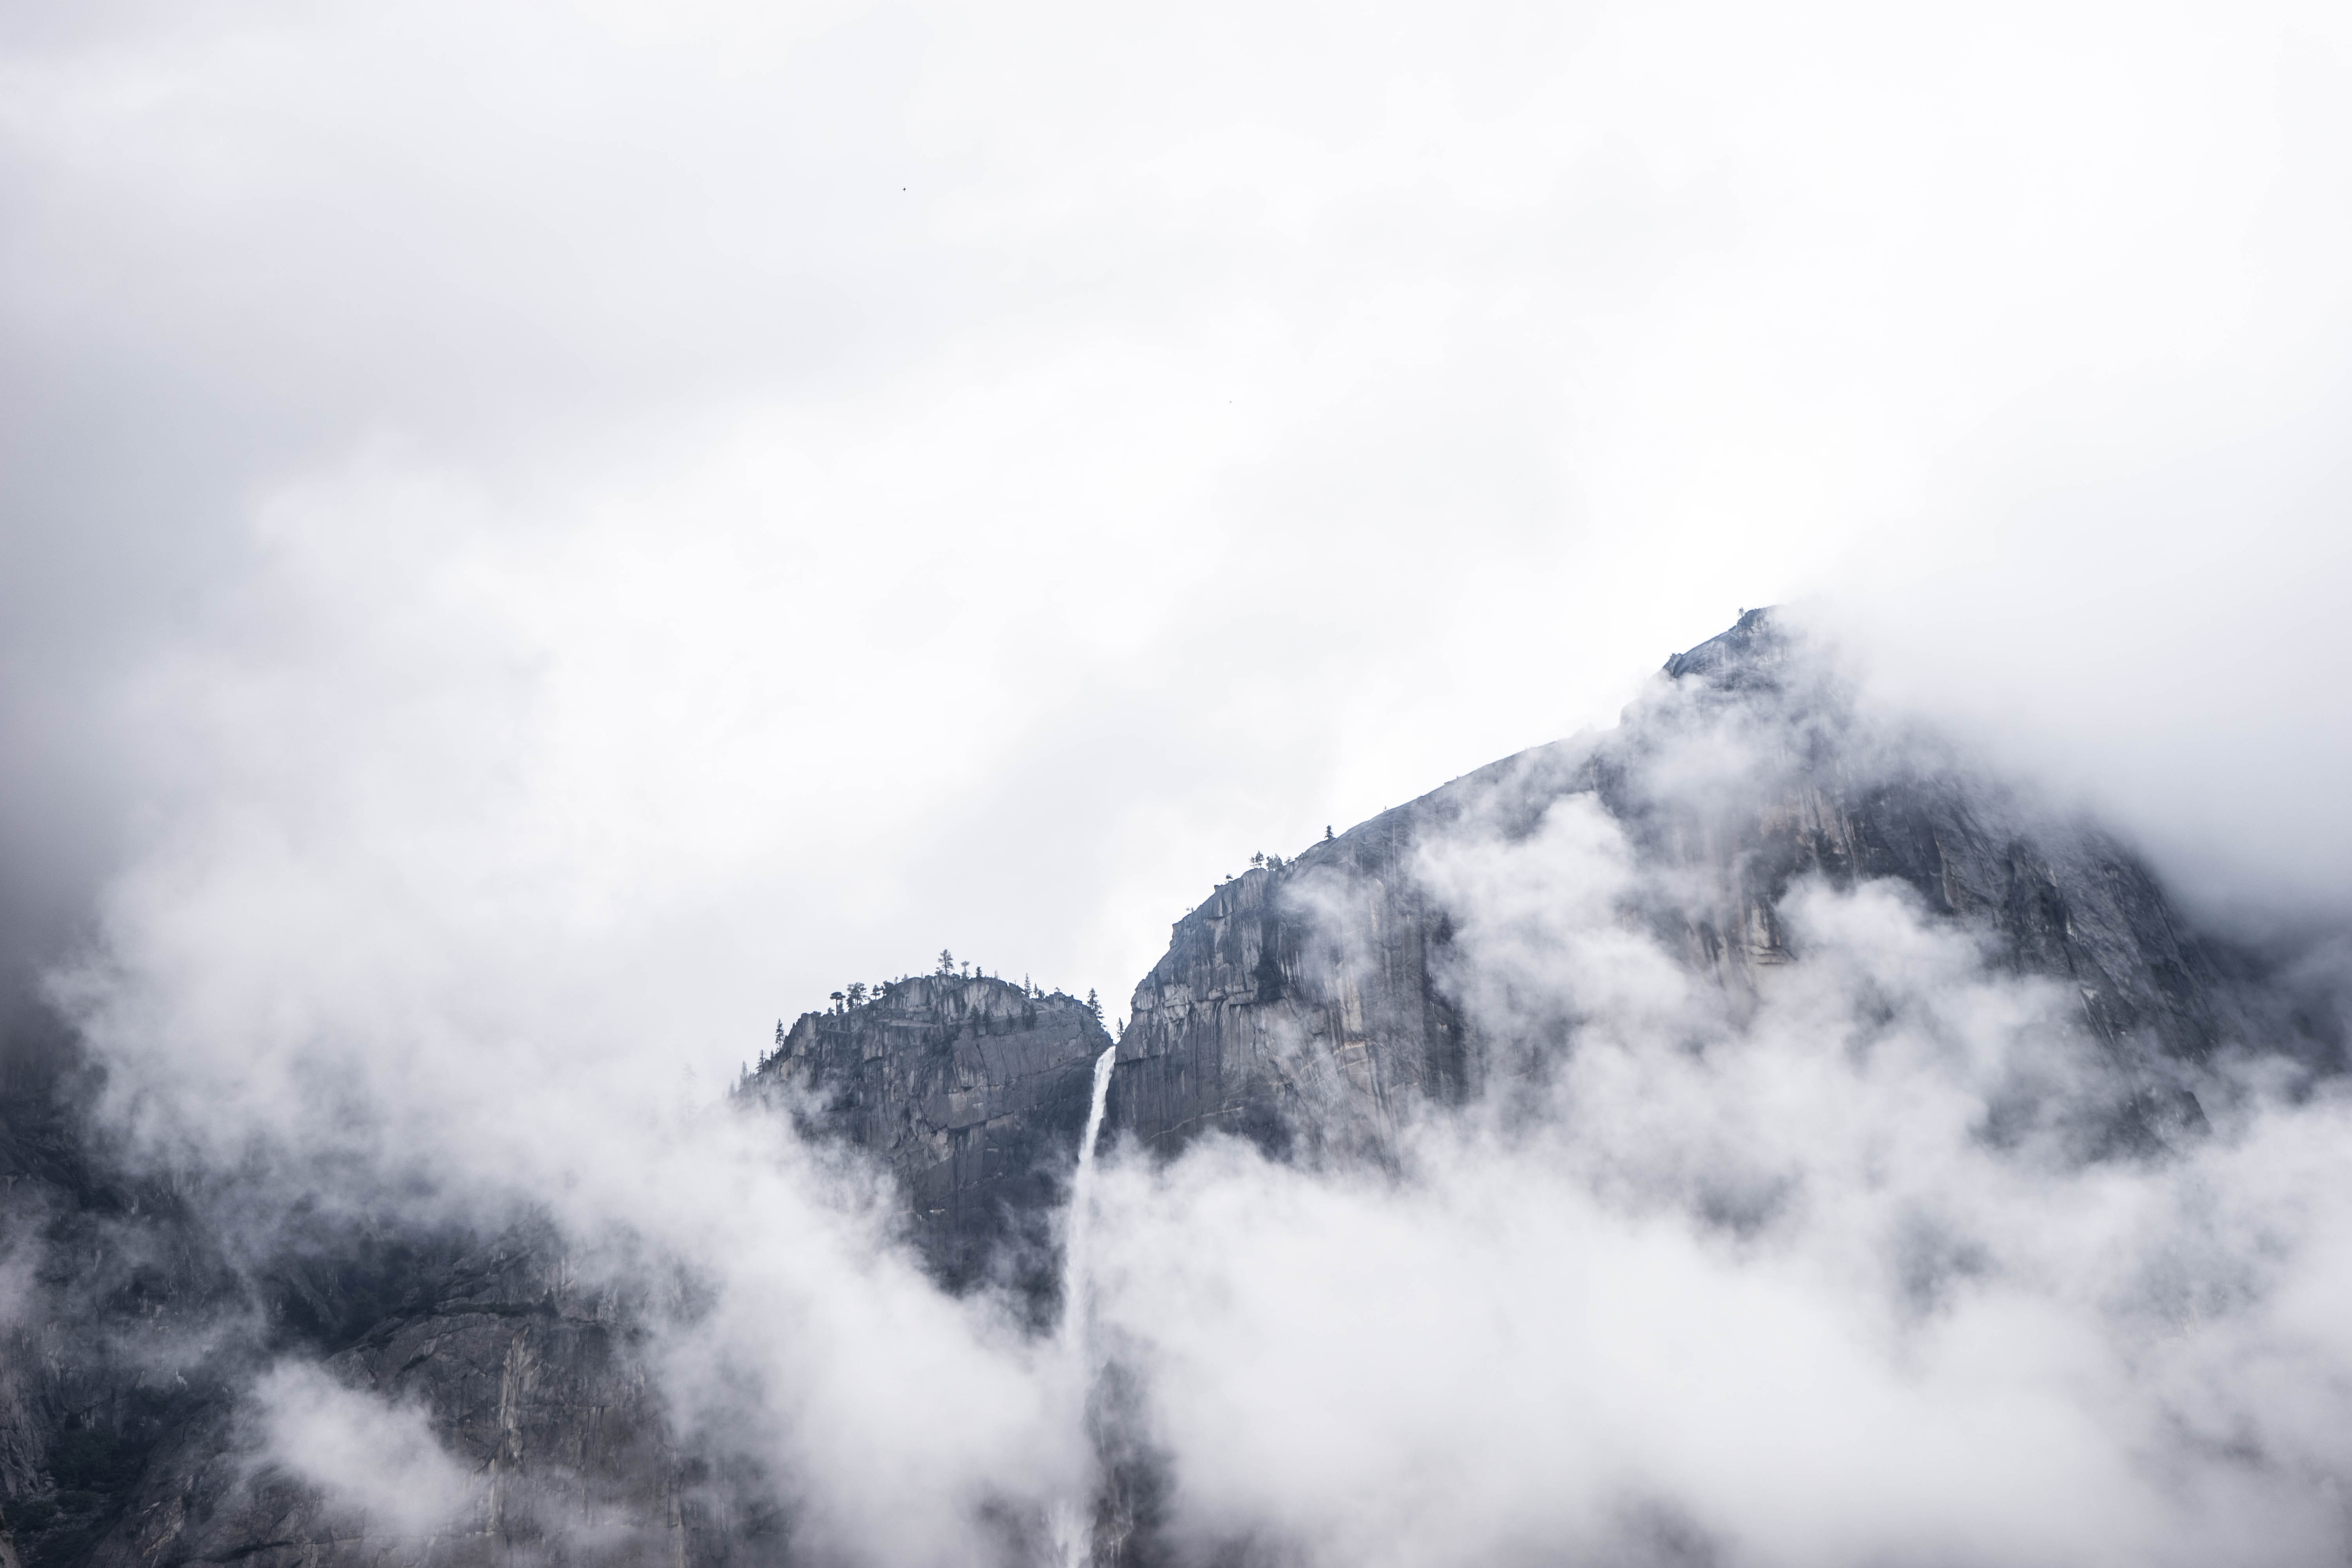 Clouds cover rocky mountain cliffs in the wild